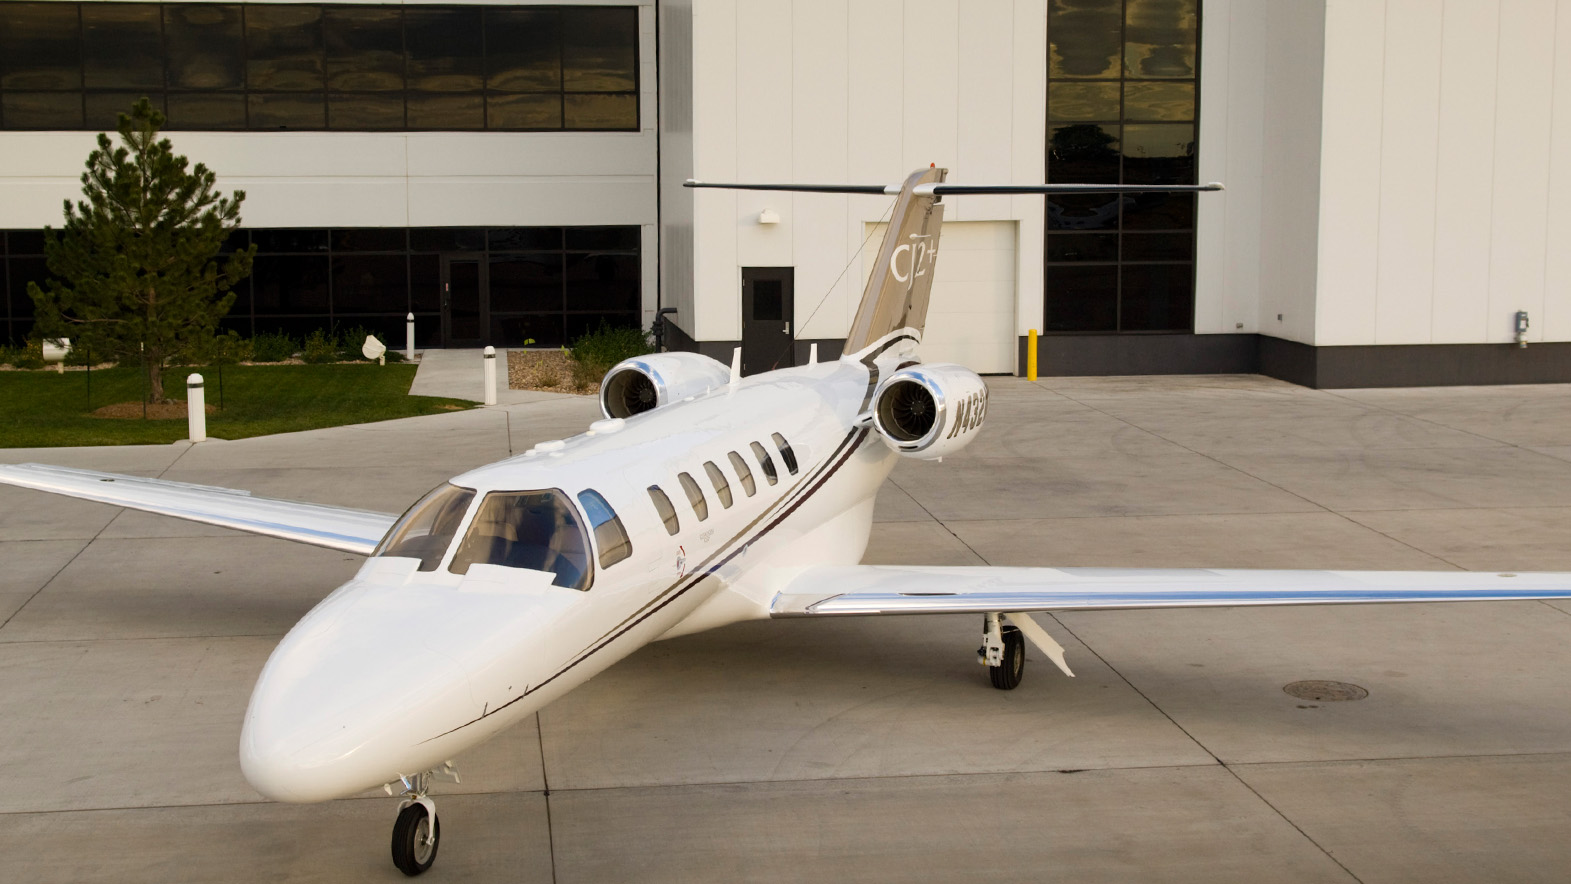 CESSNA CITATION CJ2 AND CJ2 PLUS